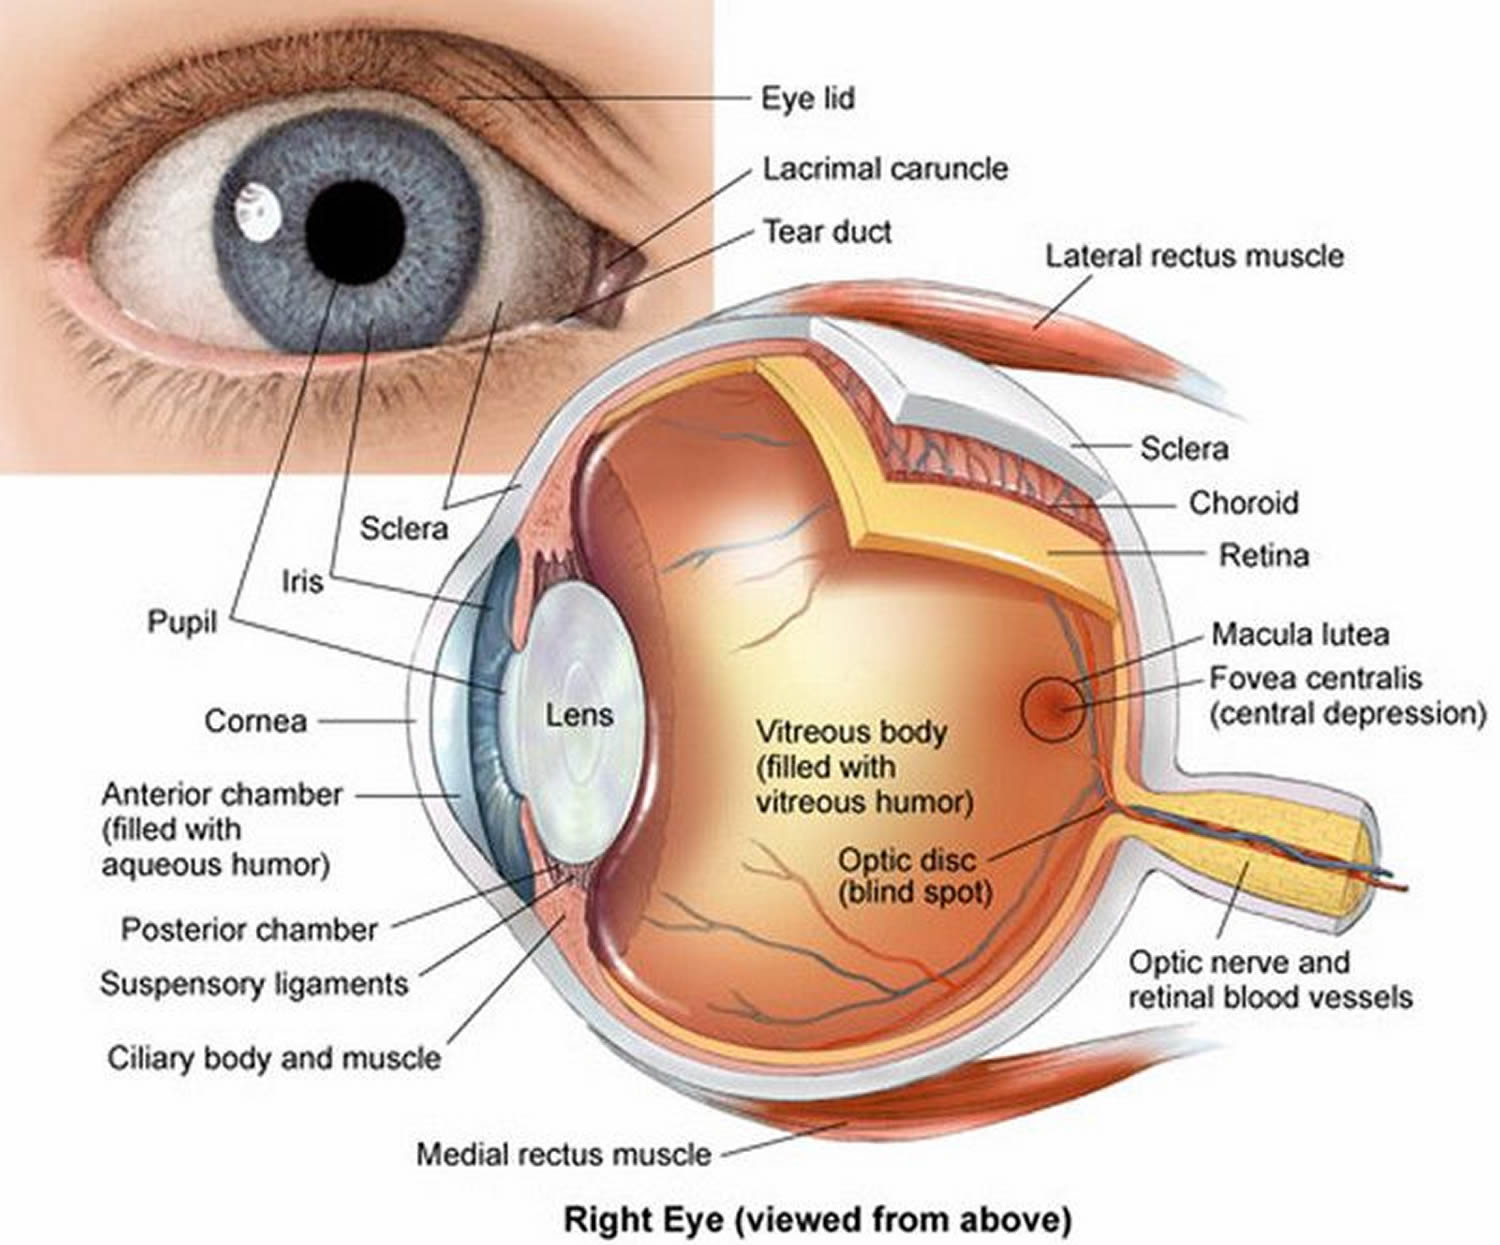 Human Eye Anatomy Parts Of The Eye And Structure Of The Human Eye